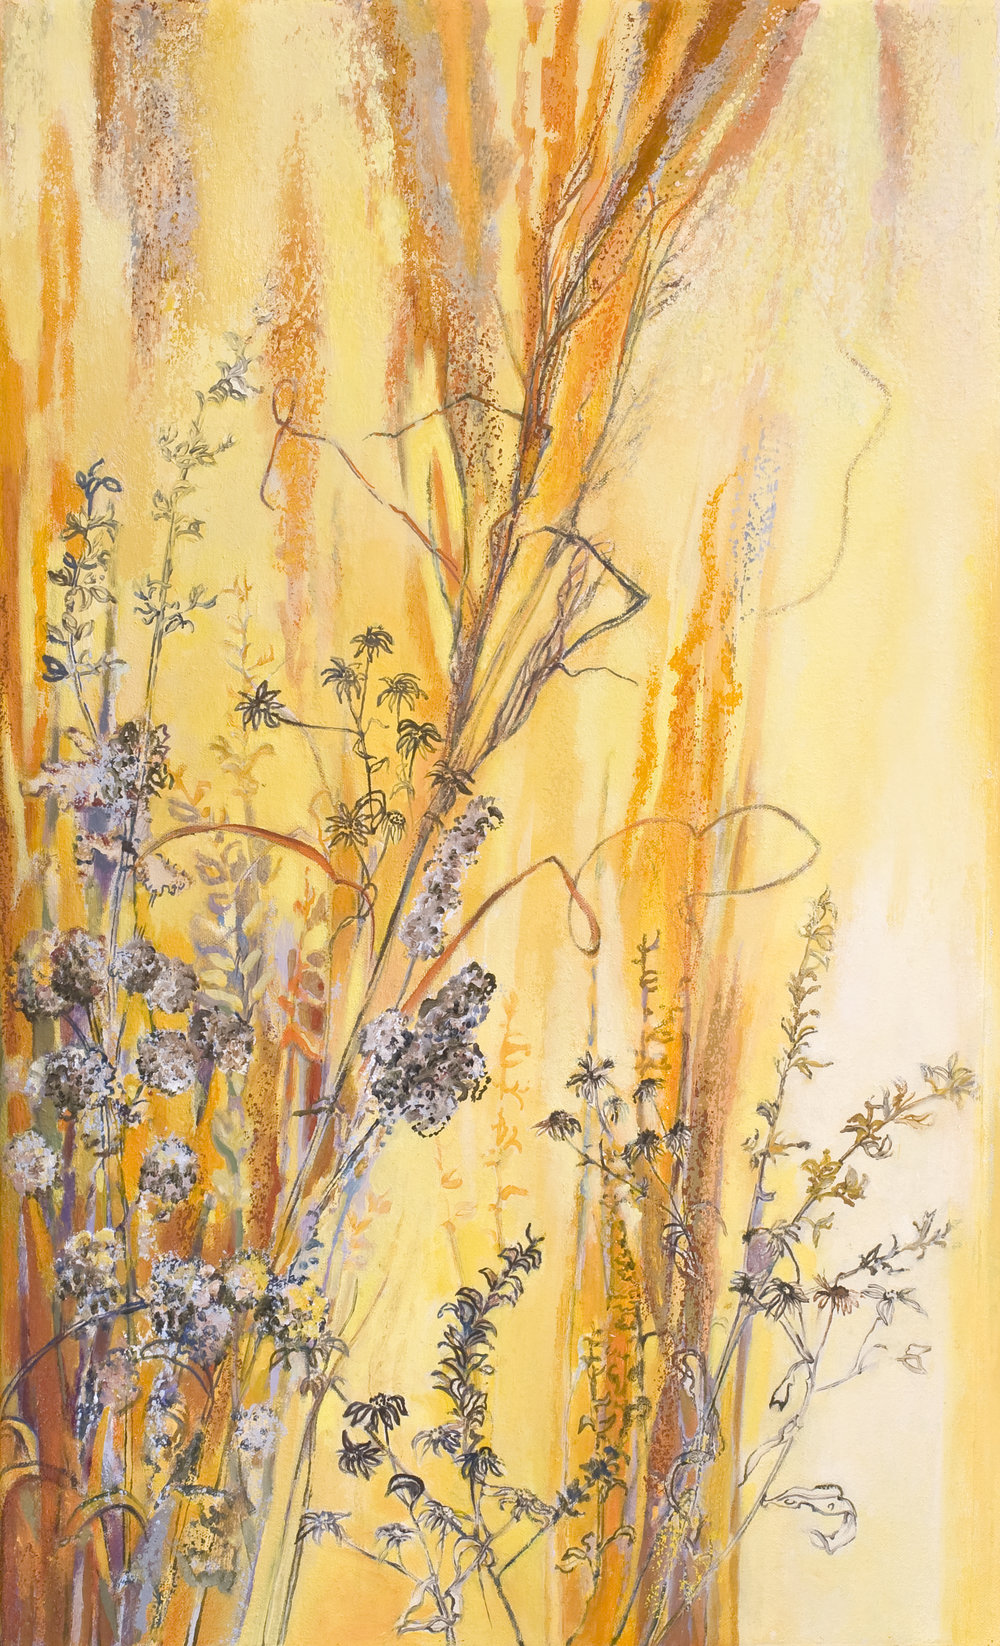 Winter Grasses, oil stick and oils on canvas, 30 ½ x 18 inches, 2008